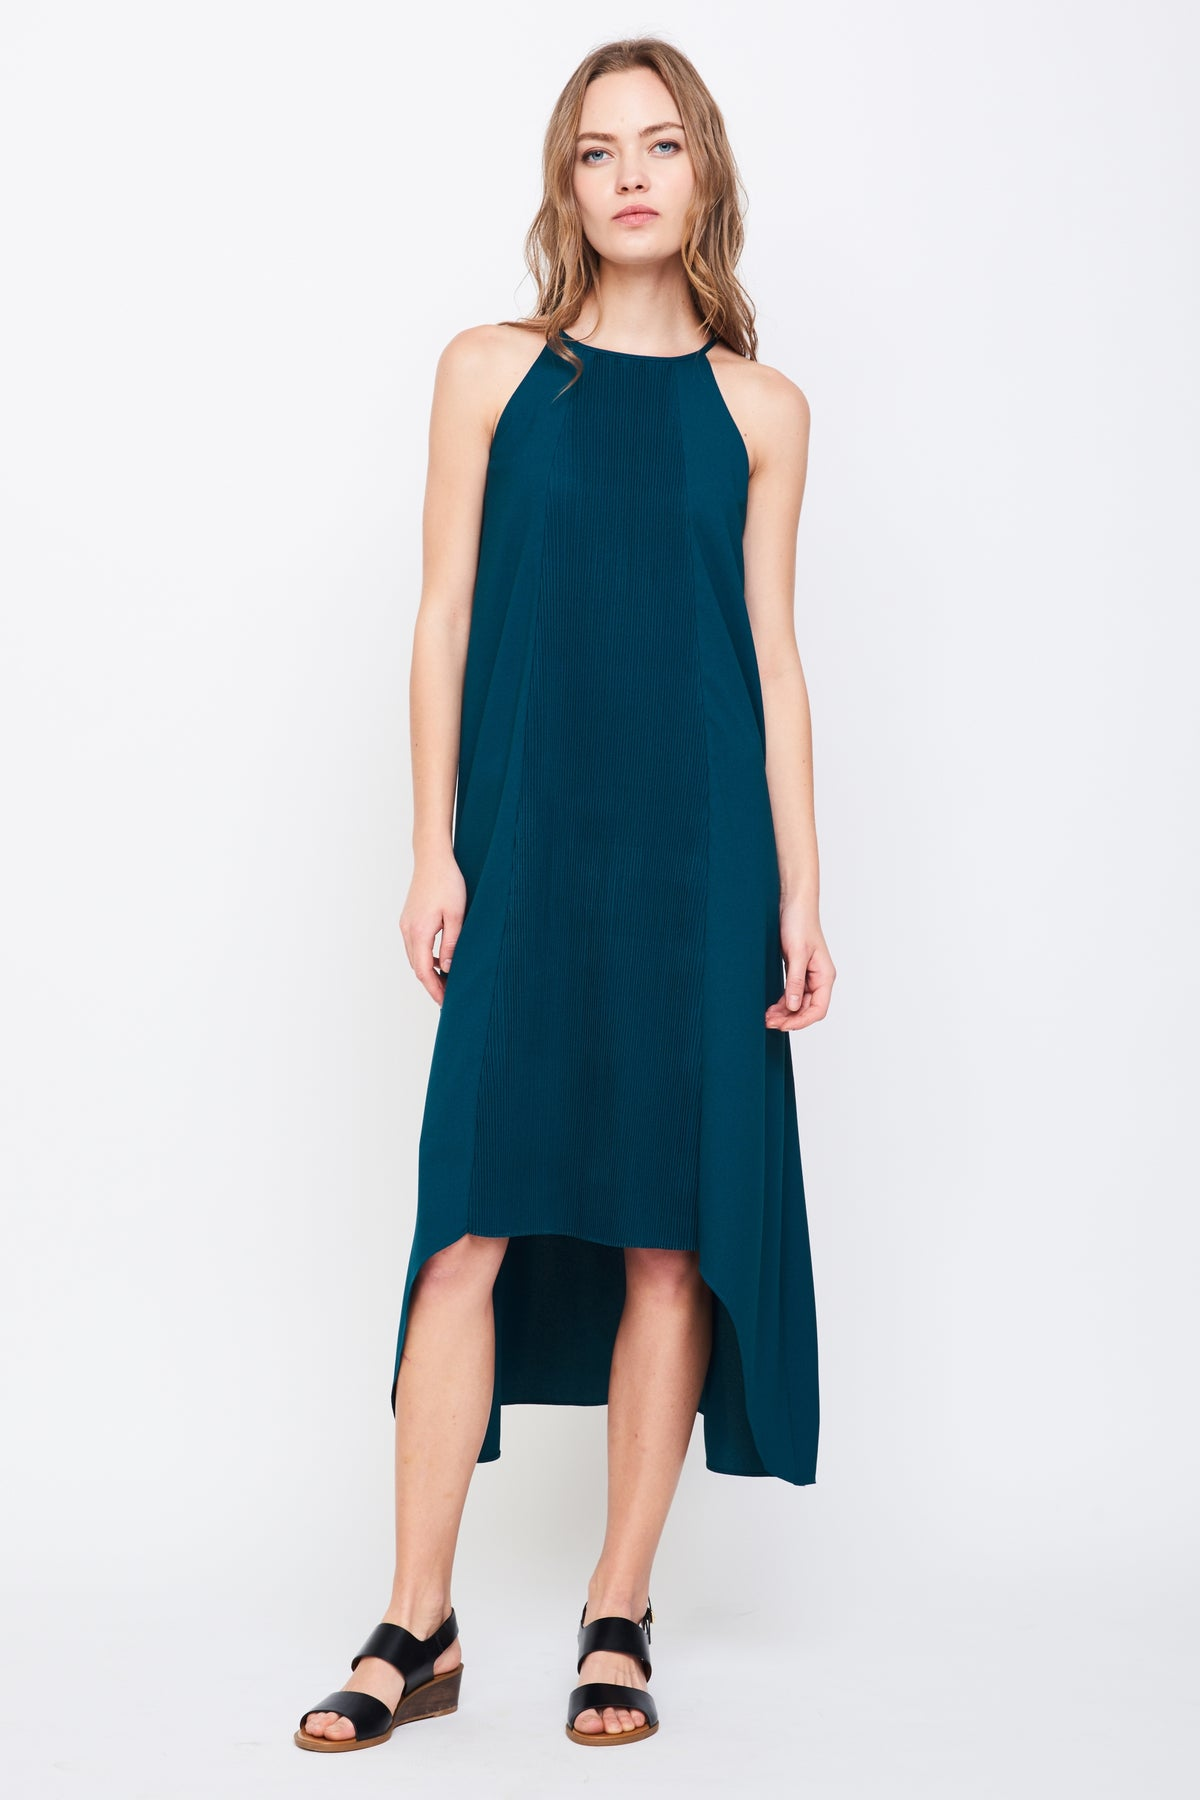 Pleated Halter Dress In Teal